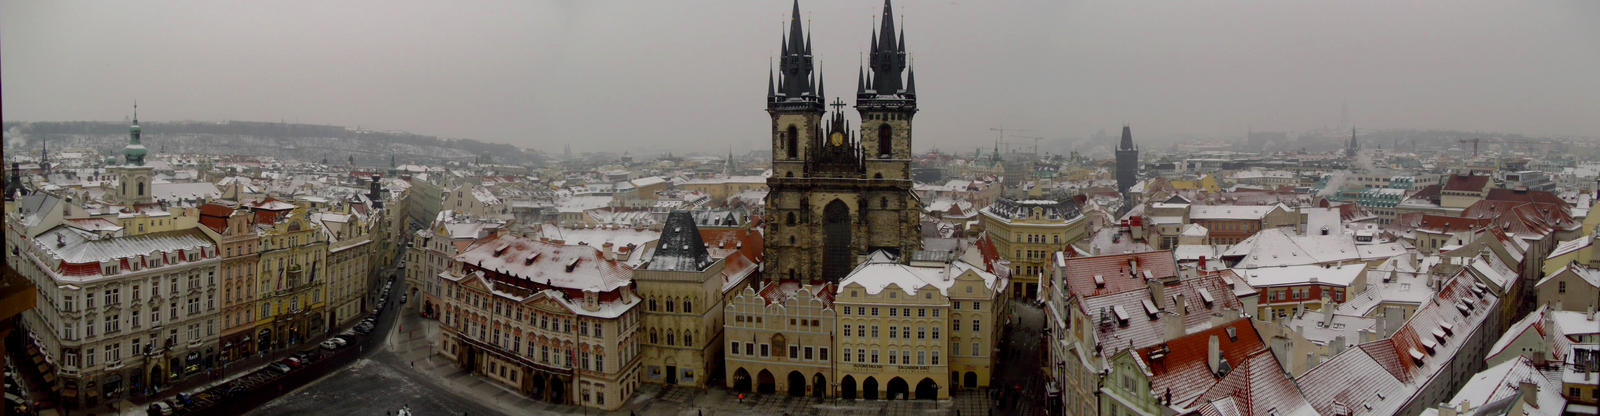 Prague Panoramio by vladioglas